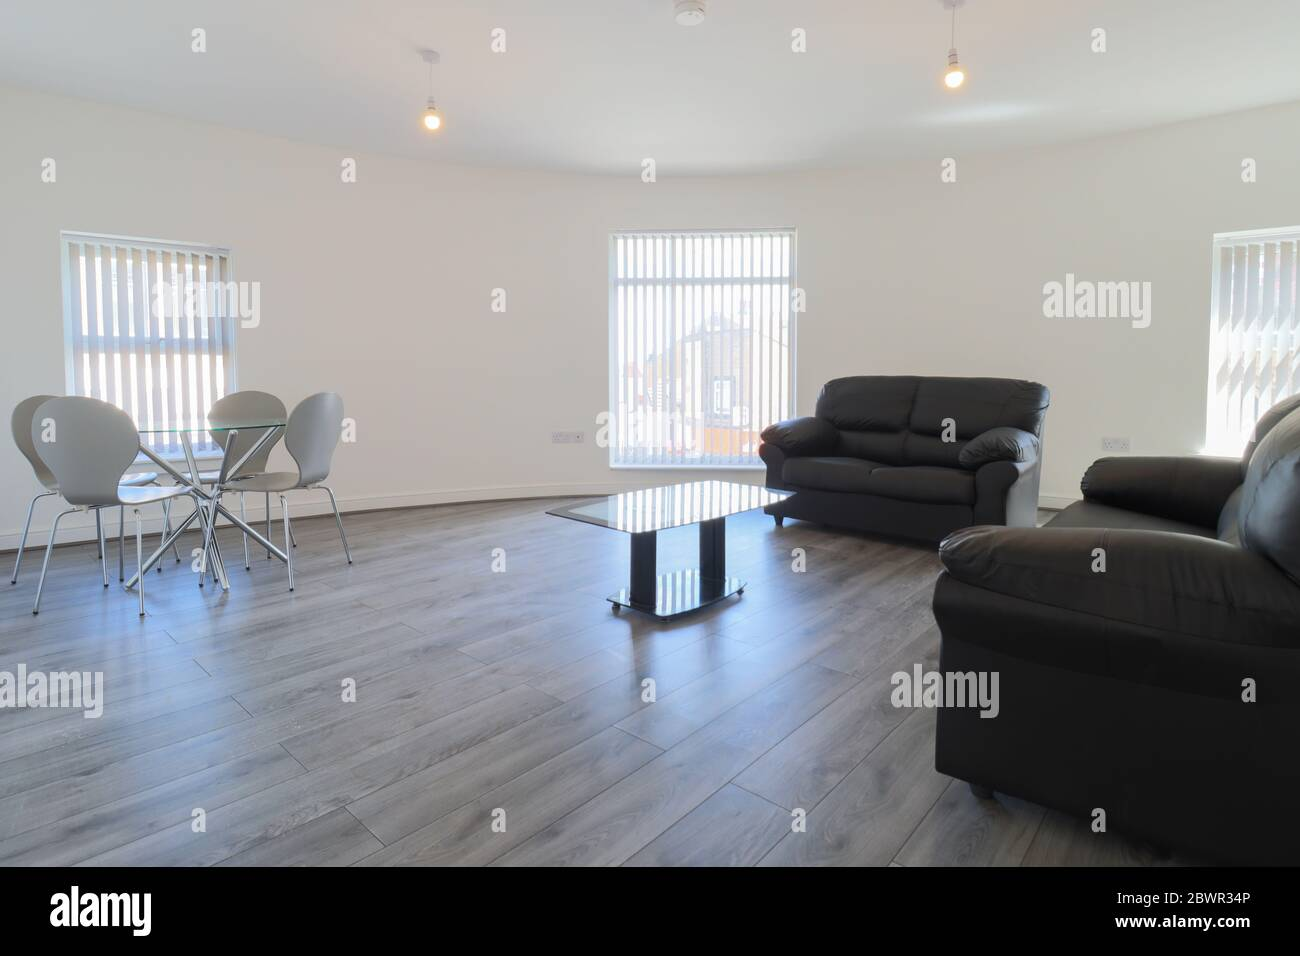 A Modern British Living Room With Two Black Leather Sofas And A Dining Table On A Grey Wooden Floor With White Walls And Modern Blinds Up At The Windo Stock Photo